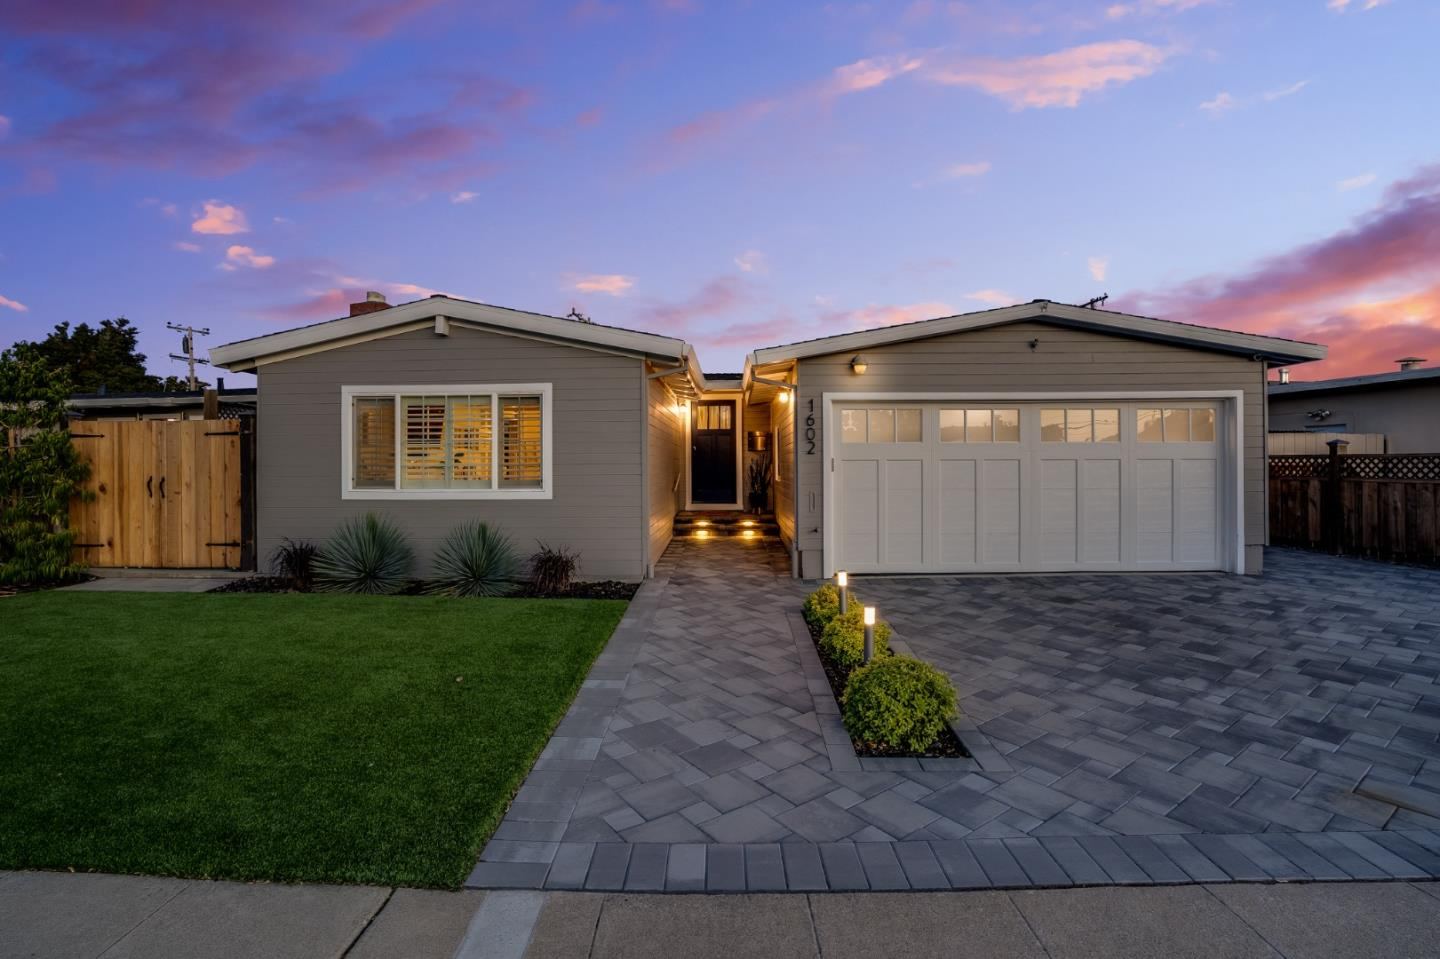 Curb appeal pops on this chic remodeled home that is immaculate inside and out.  The spacious & inviting great room welcomes you into the spacious living area w/vaulted ceiling & gas burning fireplace,  DR w/sliding glass doors leading to the deck for barbecuing.  Gleaming engineered hardwood floors in the great room/DR.  The sunny updated kit features an eat in area, ss appliances, quartz counters w/Moroccan clay tile backsplash, 5 burner gas range, mini fridge w/maple counter bar top, 2 skylights, & tile flr.  Lush back yd great for entertaining w/large patio w/awning, LED lighting, Rachio smart sprinkler, lemon, clementine orange, & Podacarpus trees & Lg Tuff Shed for storage.  Amenities include dbl pane windows, LED lights in home, yard & garage, Therma-Tru front dr w/Yale & Nest smart lock, Nest doorbell, front yd in-ground gutter drains.  Close to schools, downtown San Mateo, shopping & restaurants.  Just call the movers!